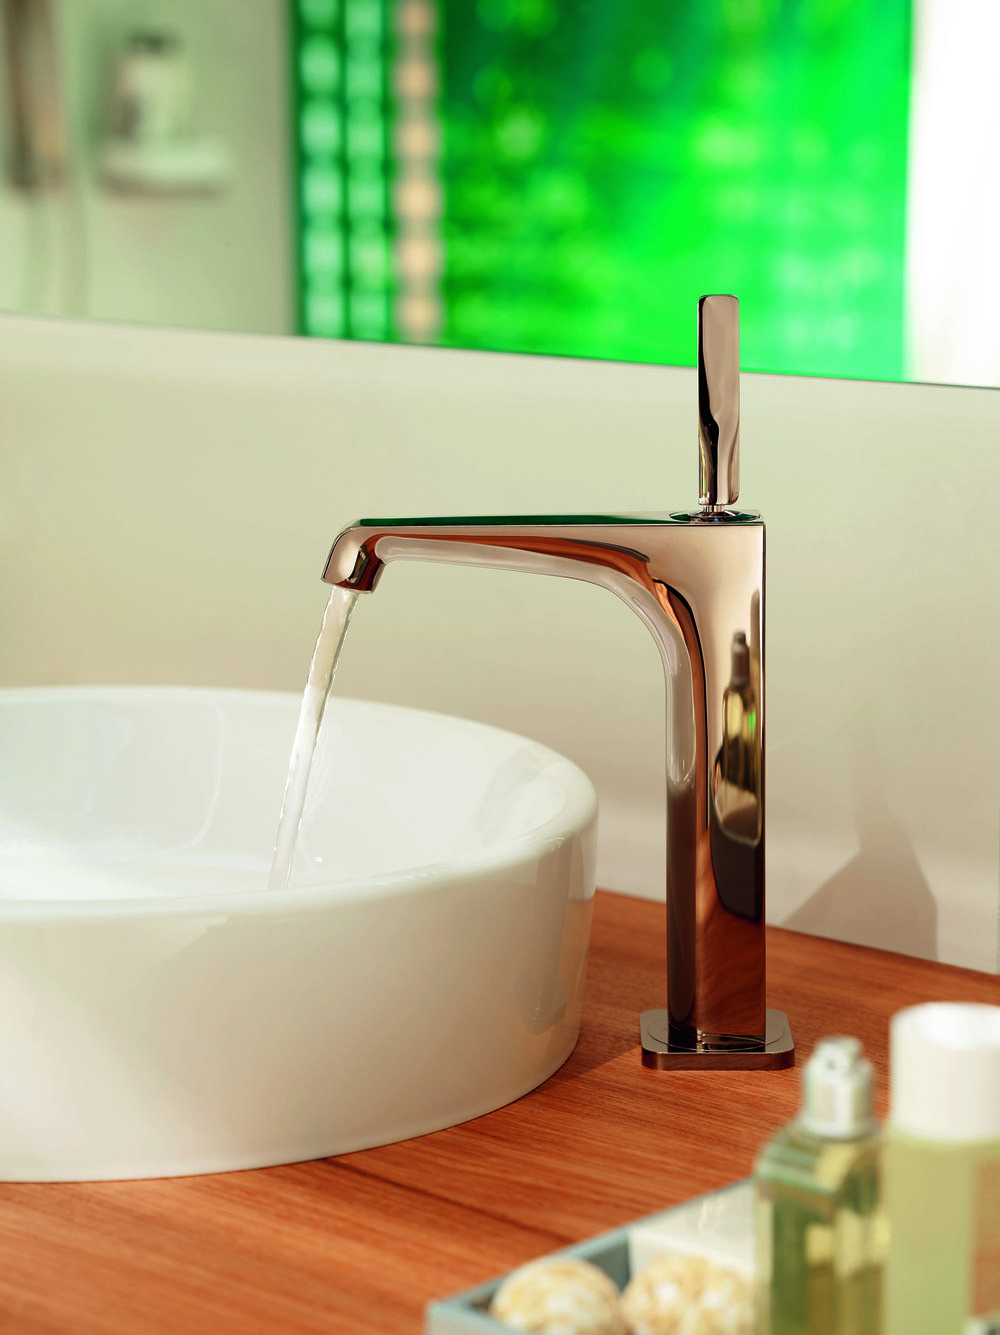 AXOR_Citterio_E_Single-Hole Faucet, Medium_Polished red gold.jpg